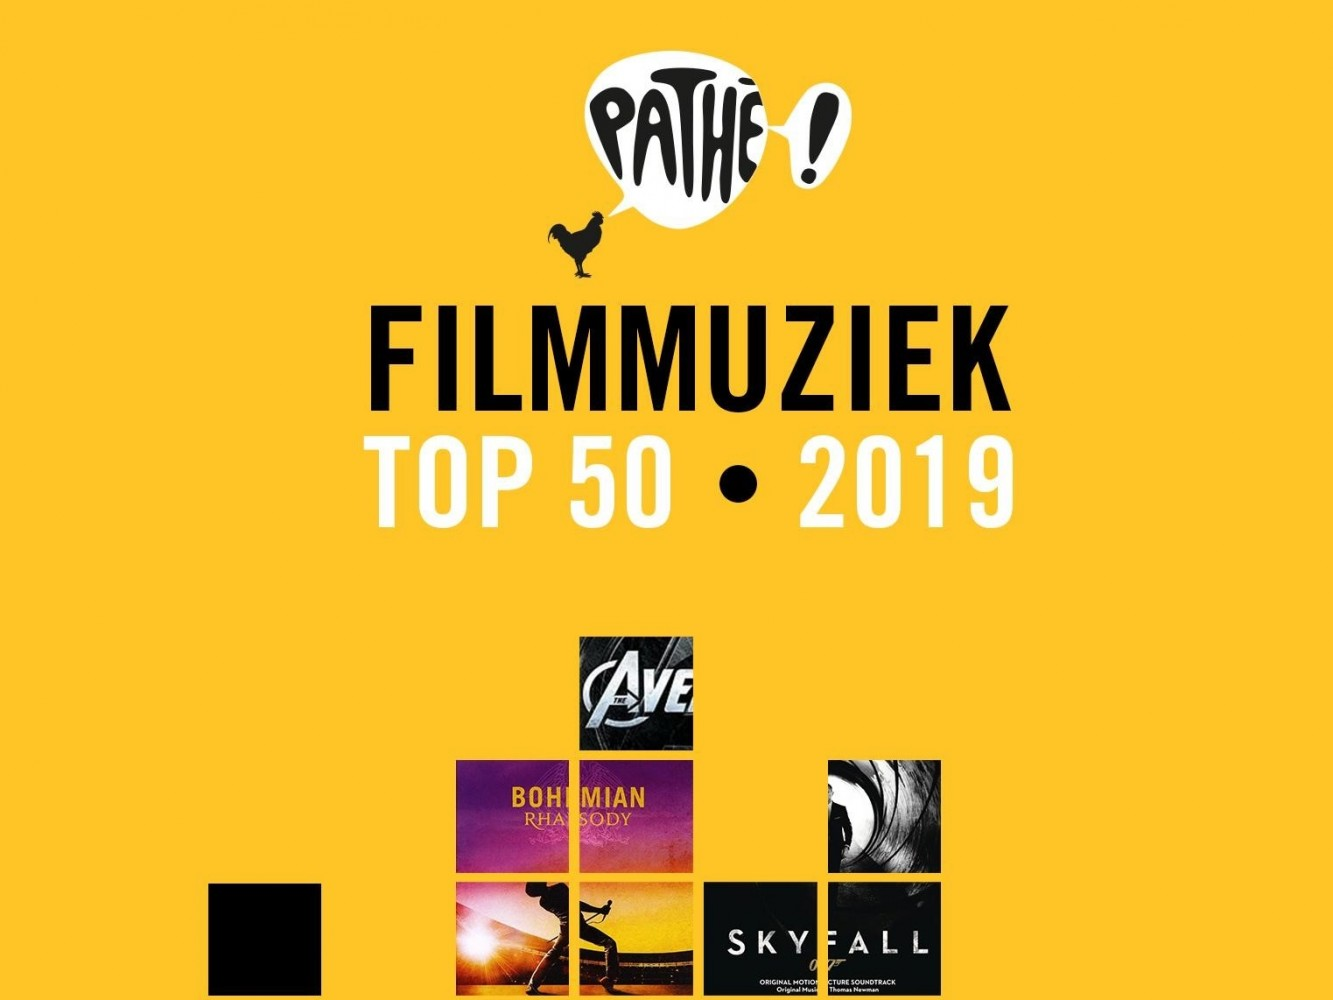 Pathé Top 50 filmmuziek